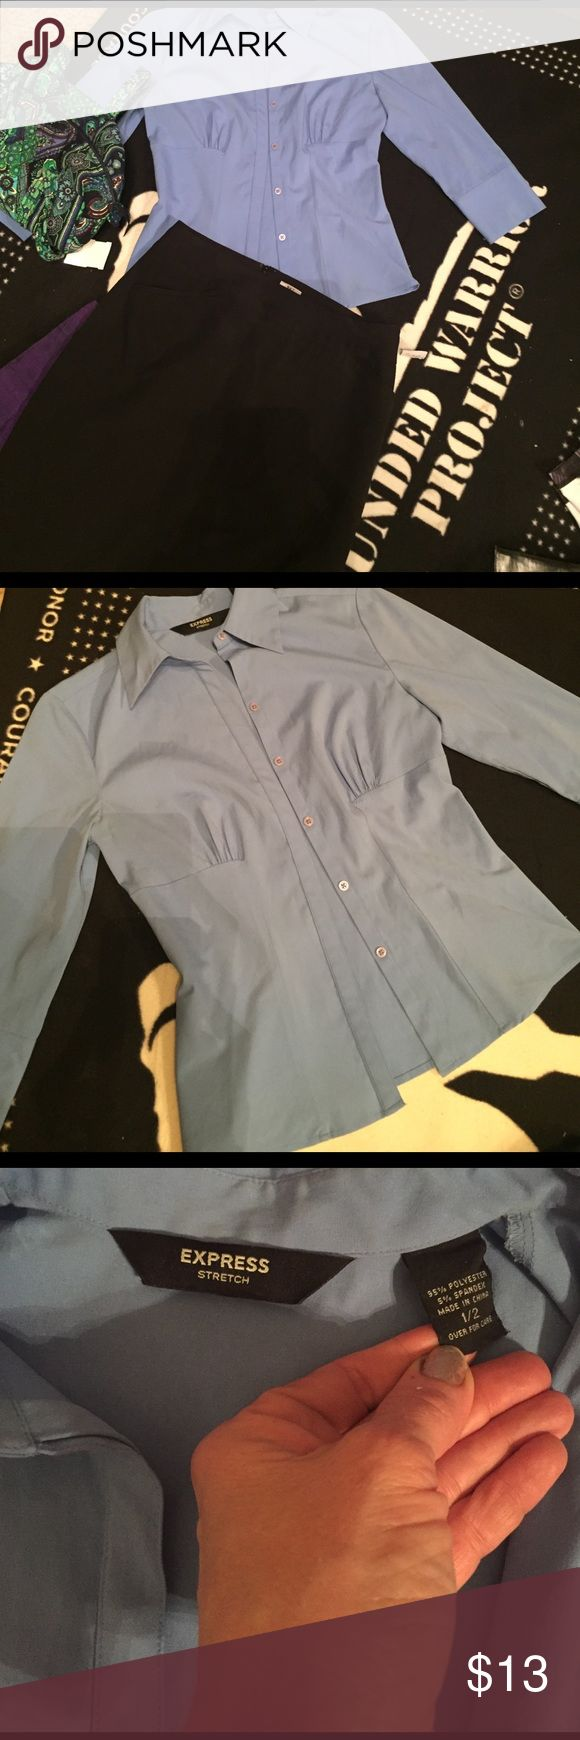 Women's fitted baby blue dress shirt Express 1/2 Very nice Express fitted sliming dress shirt in baby blue. Tapered at waist and shows off your curves! Very flattering shirt! Size says 1/2 and it has 3/4 sleeves Express Tops Button Down Shirts